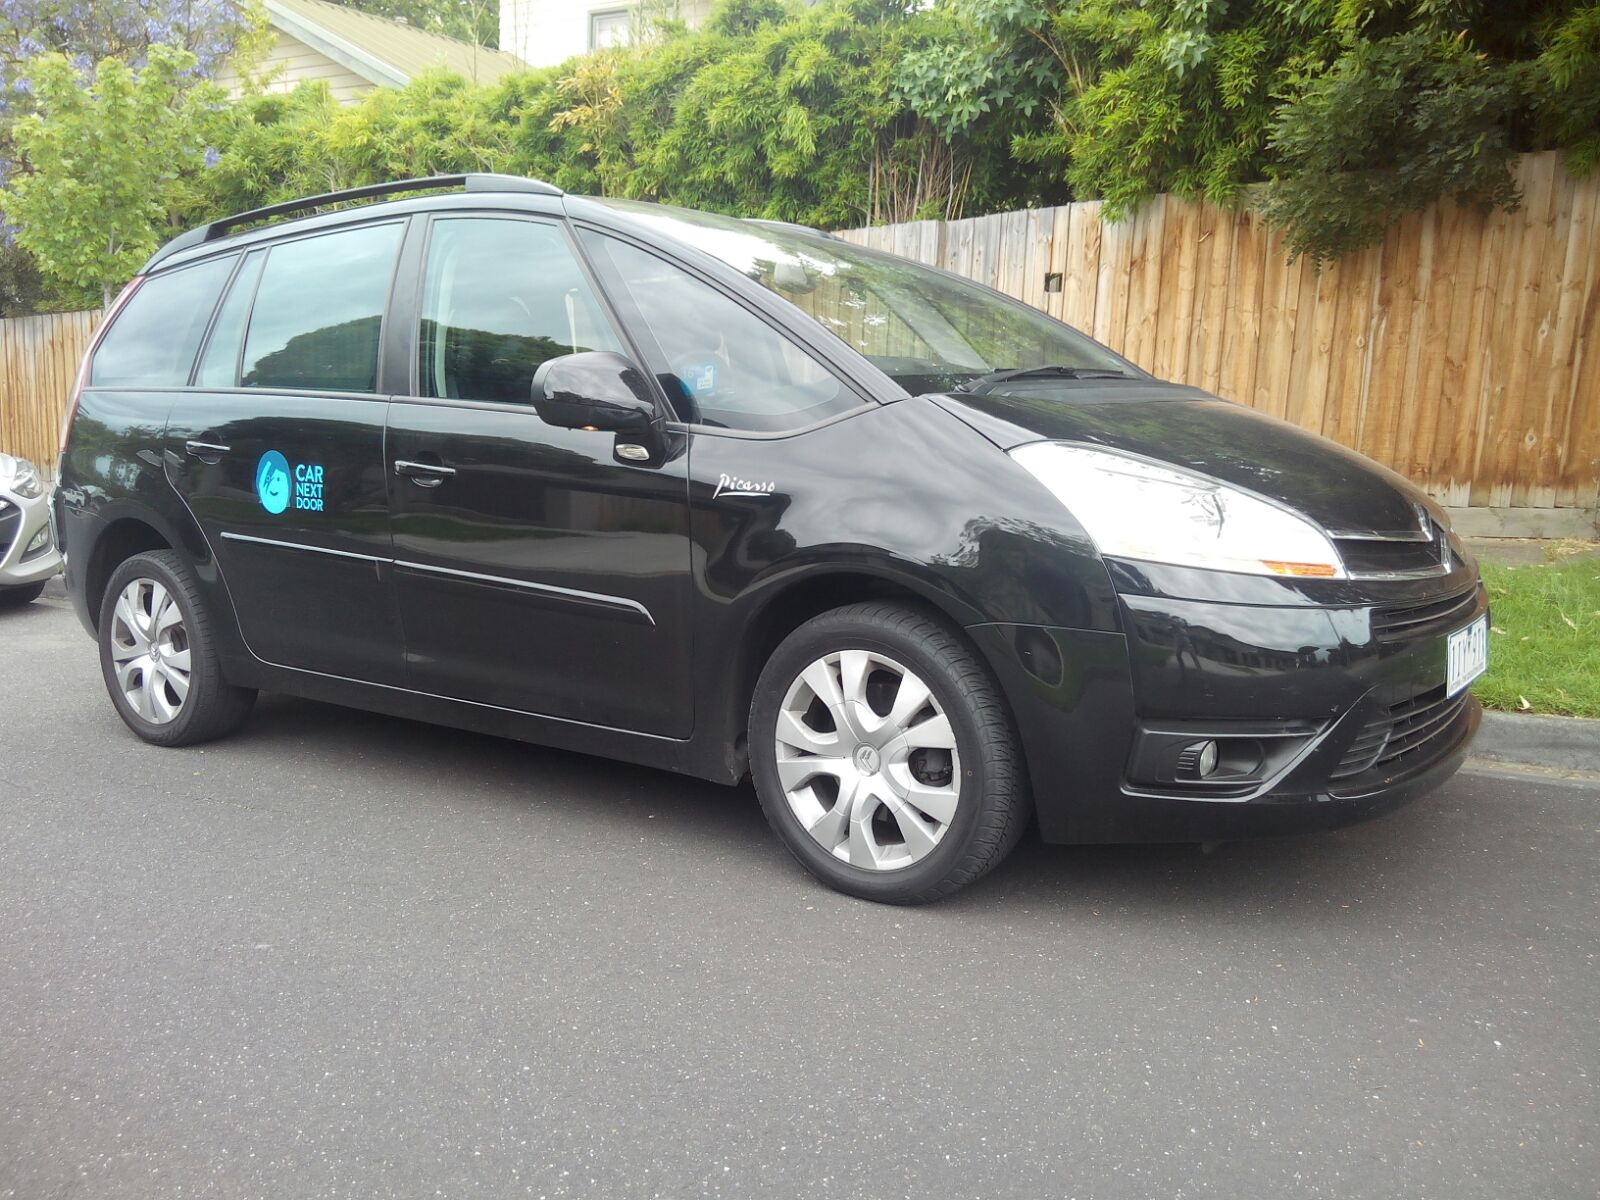 Picture of Sharyn's 2011 Citroen C4 Grand Picasso